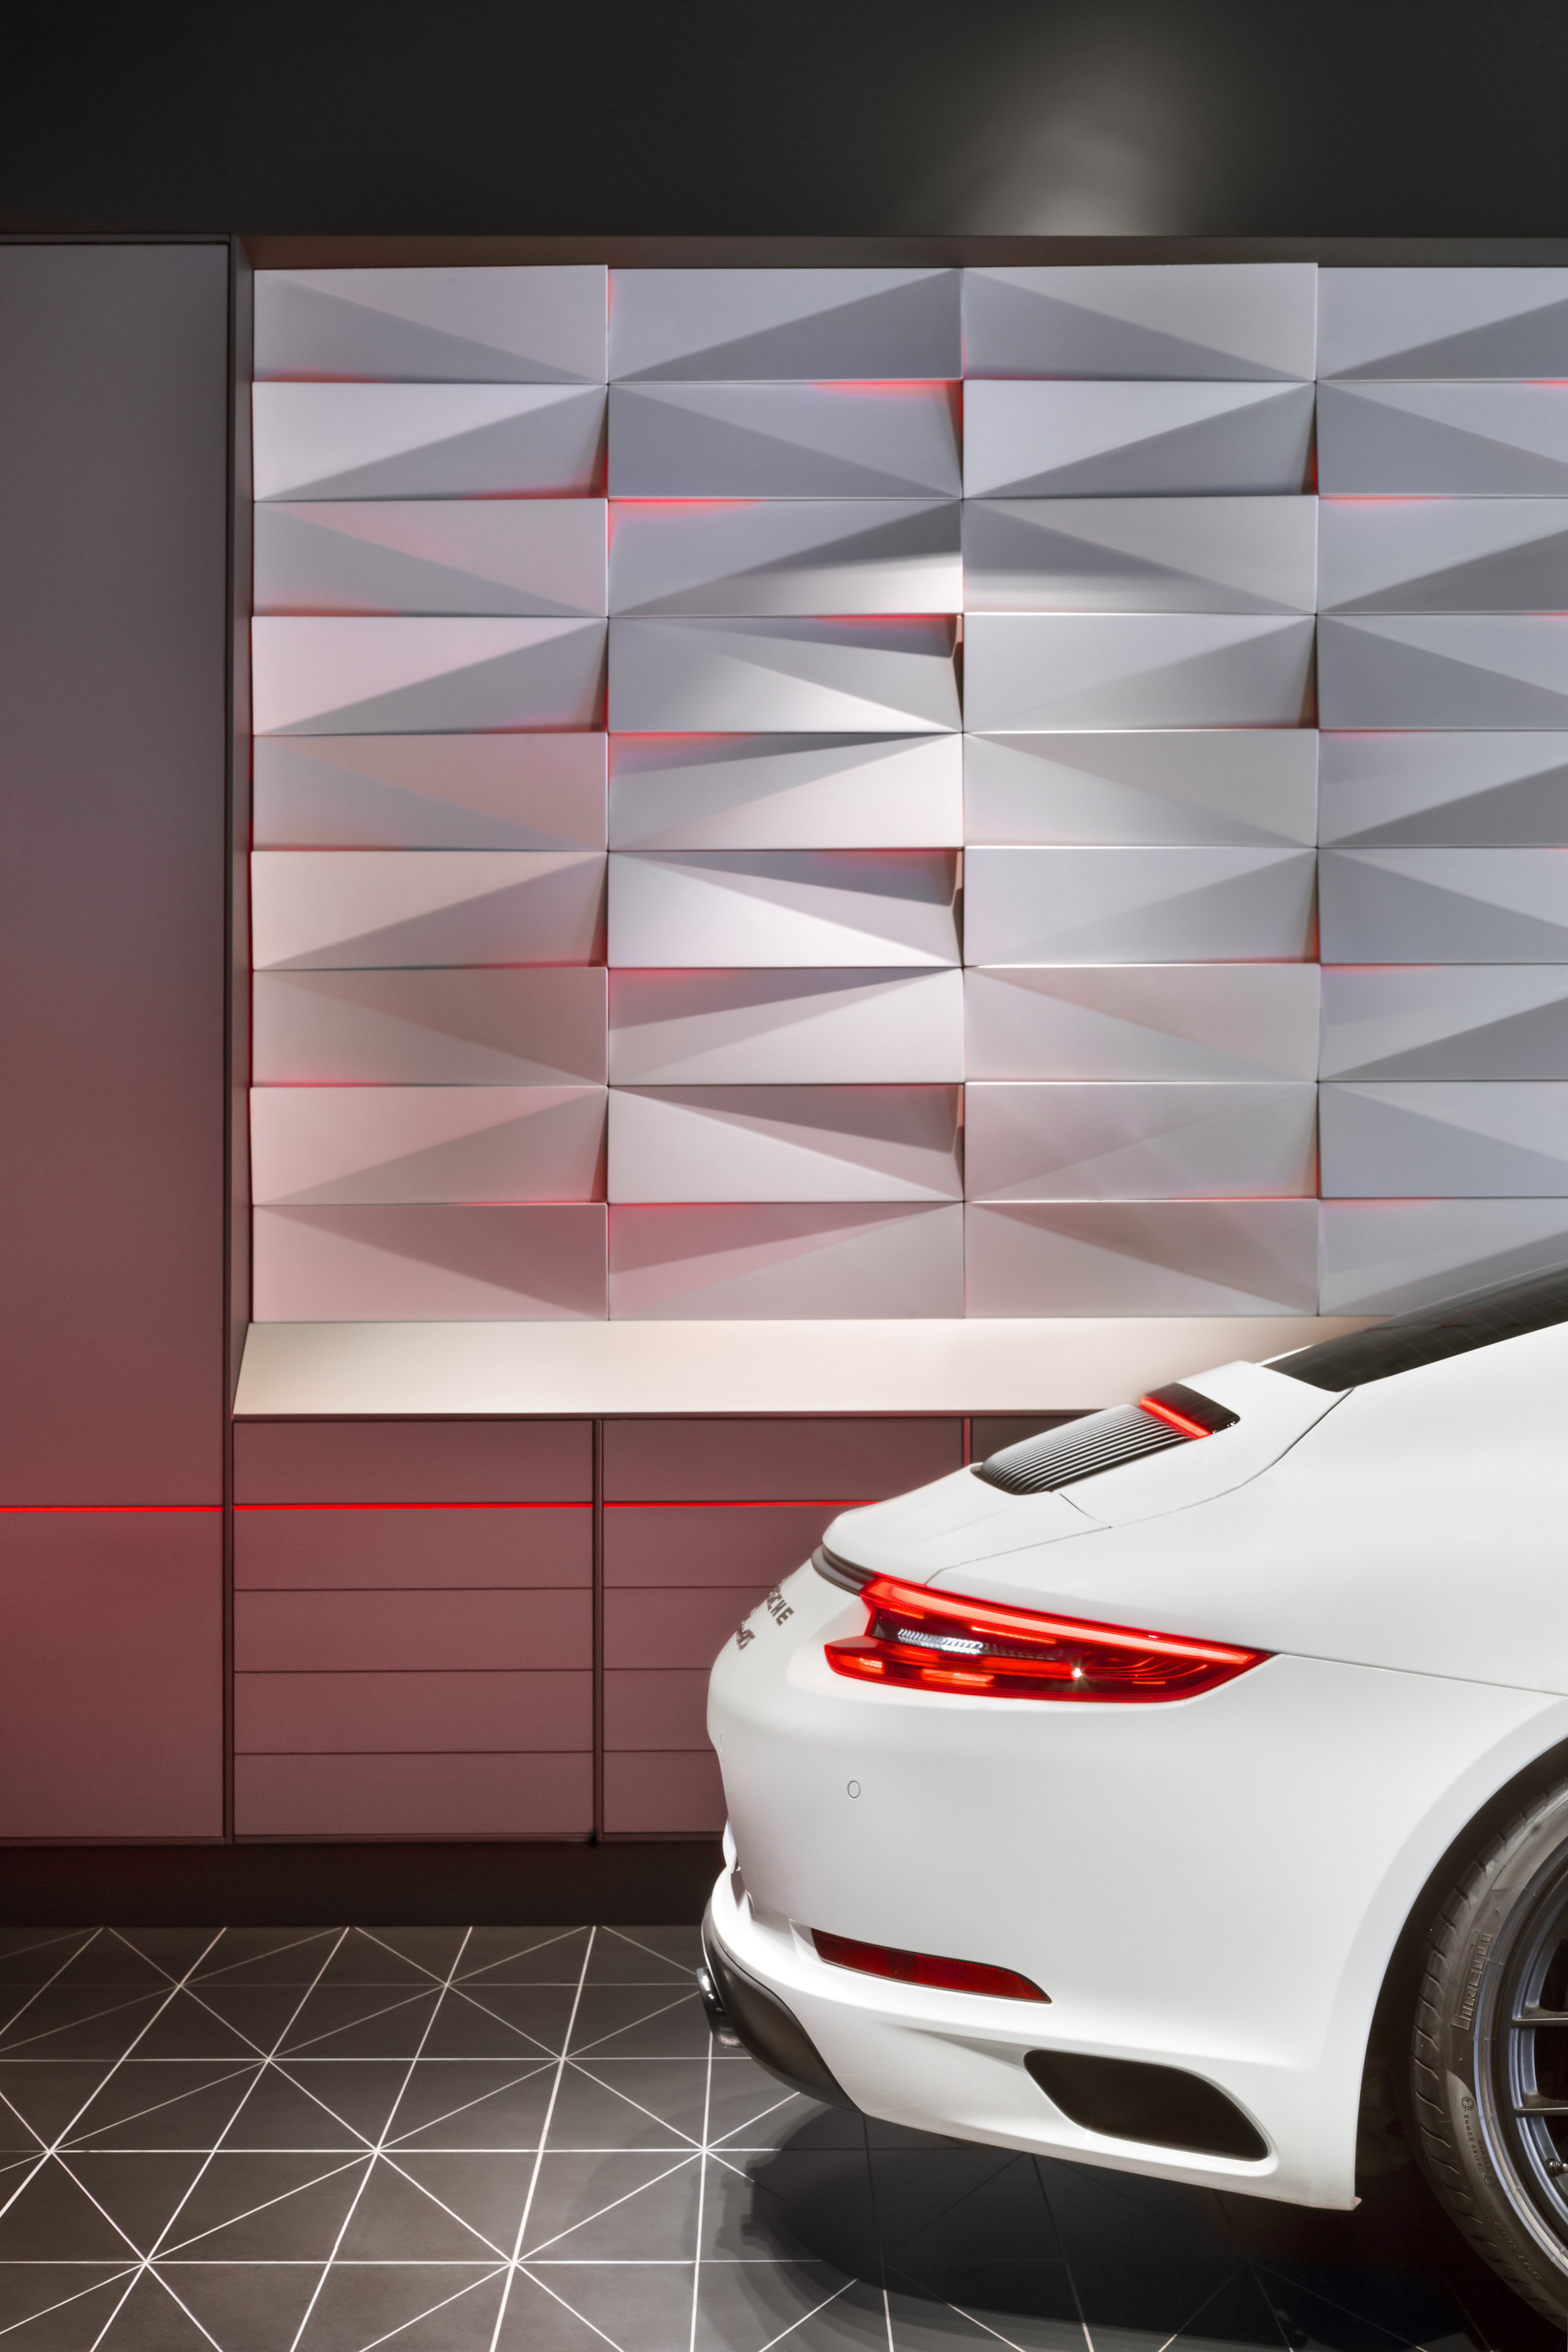 porsche-studio_retail-interior-design_coordination-berlin_10a.jpg